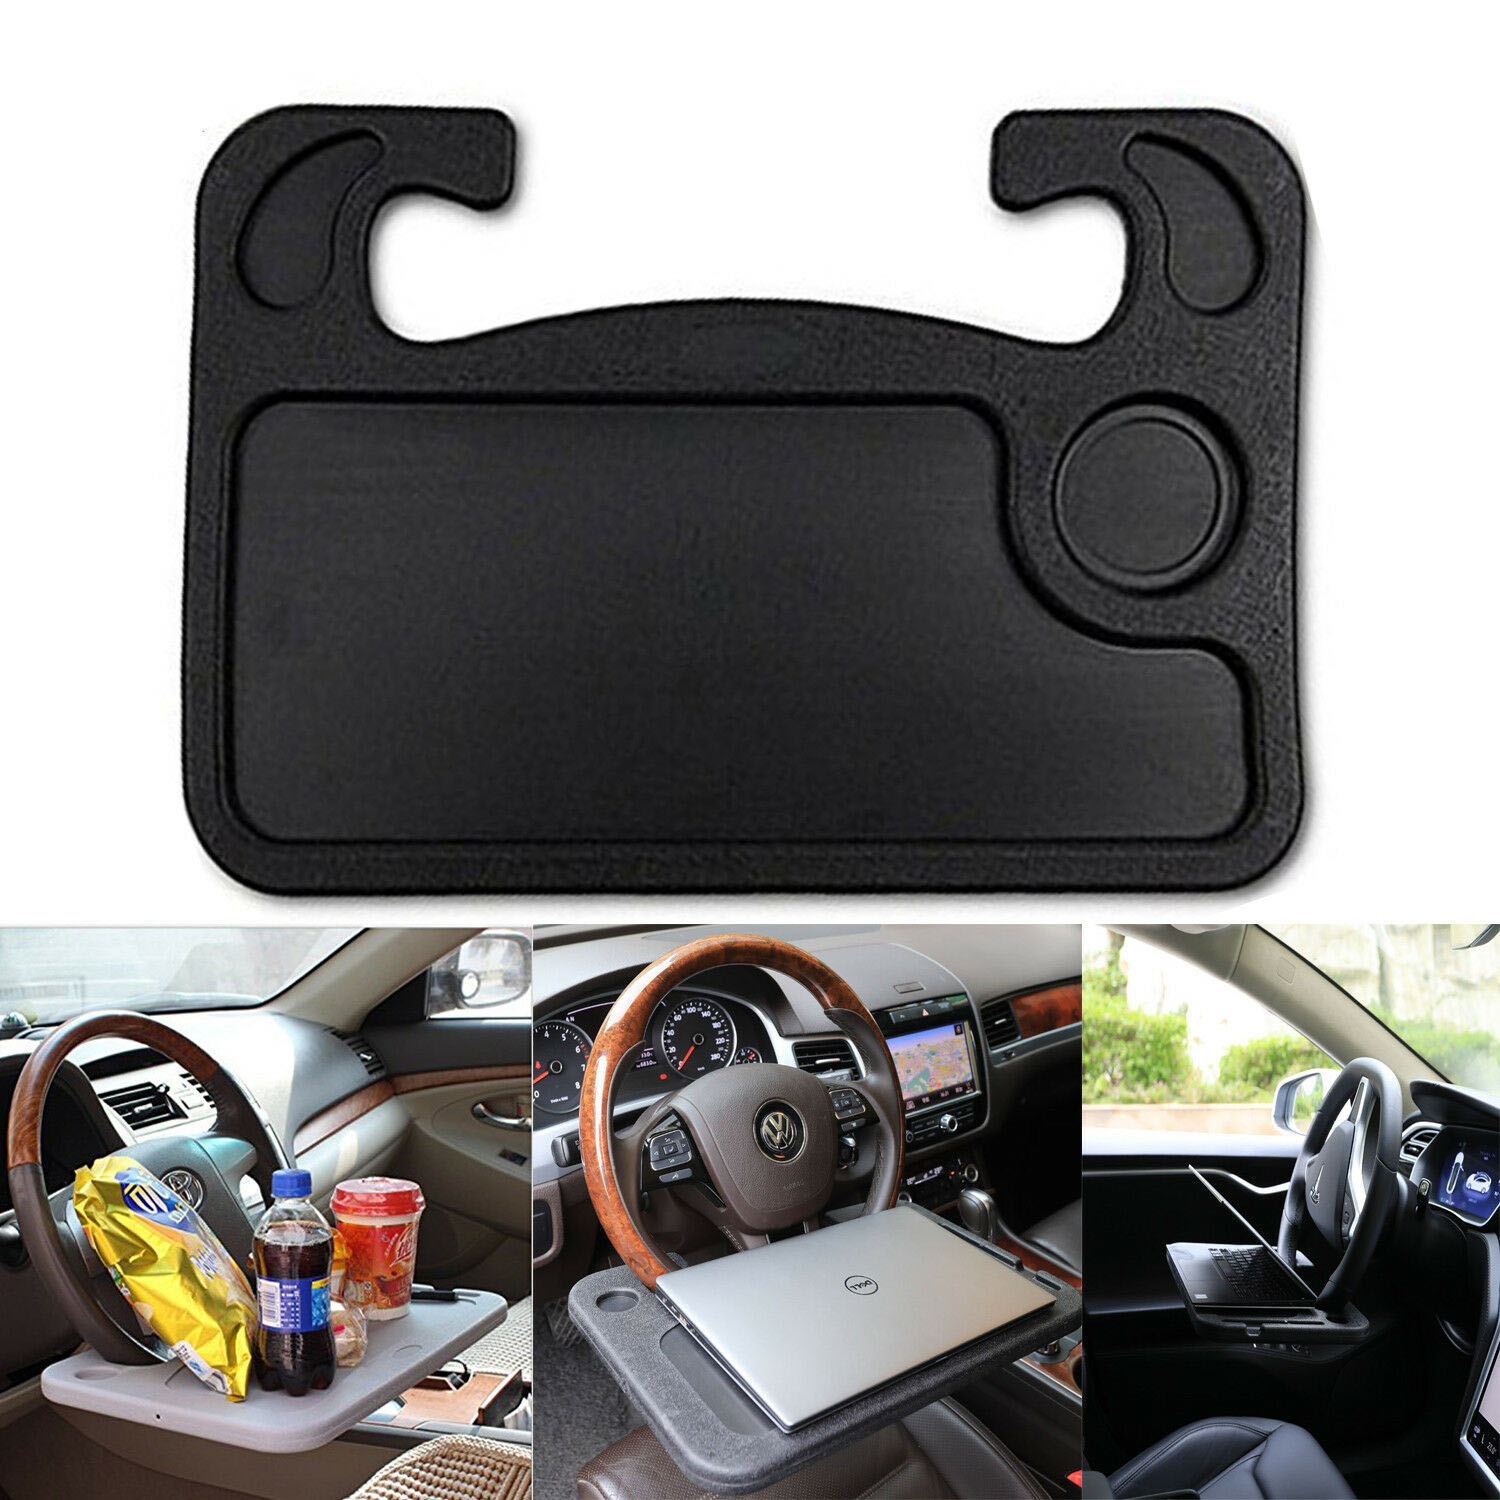 Portable <font><b>Car</b></font> Laptop Computer <font><b>Desk</b></font> Mount Stand Steering <font><b>Wheel</b></font> Eat Work Drink Food Coffee Goods Tray Board Dining Table Holder image